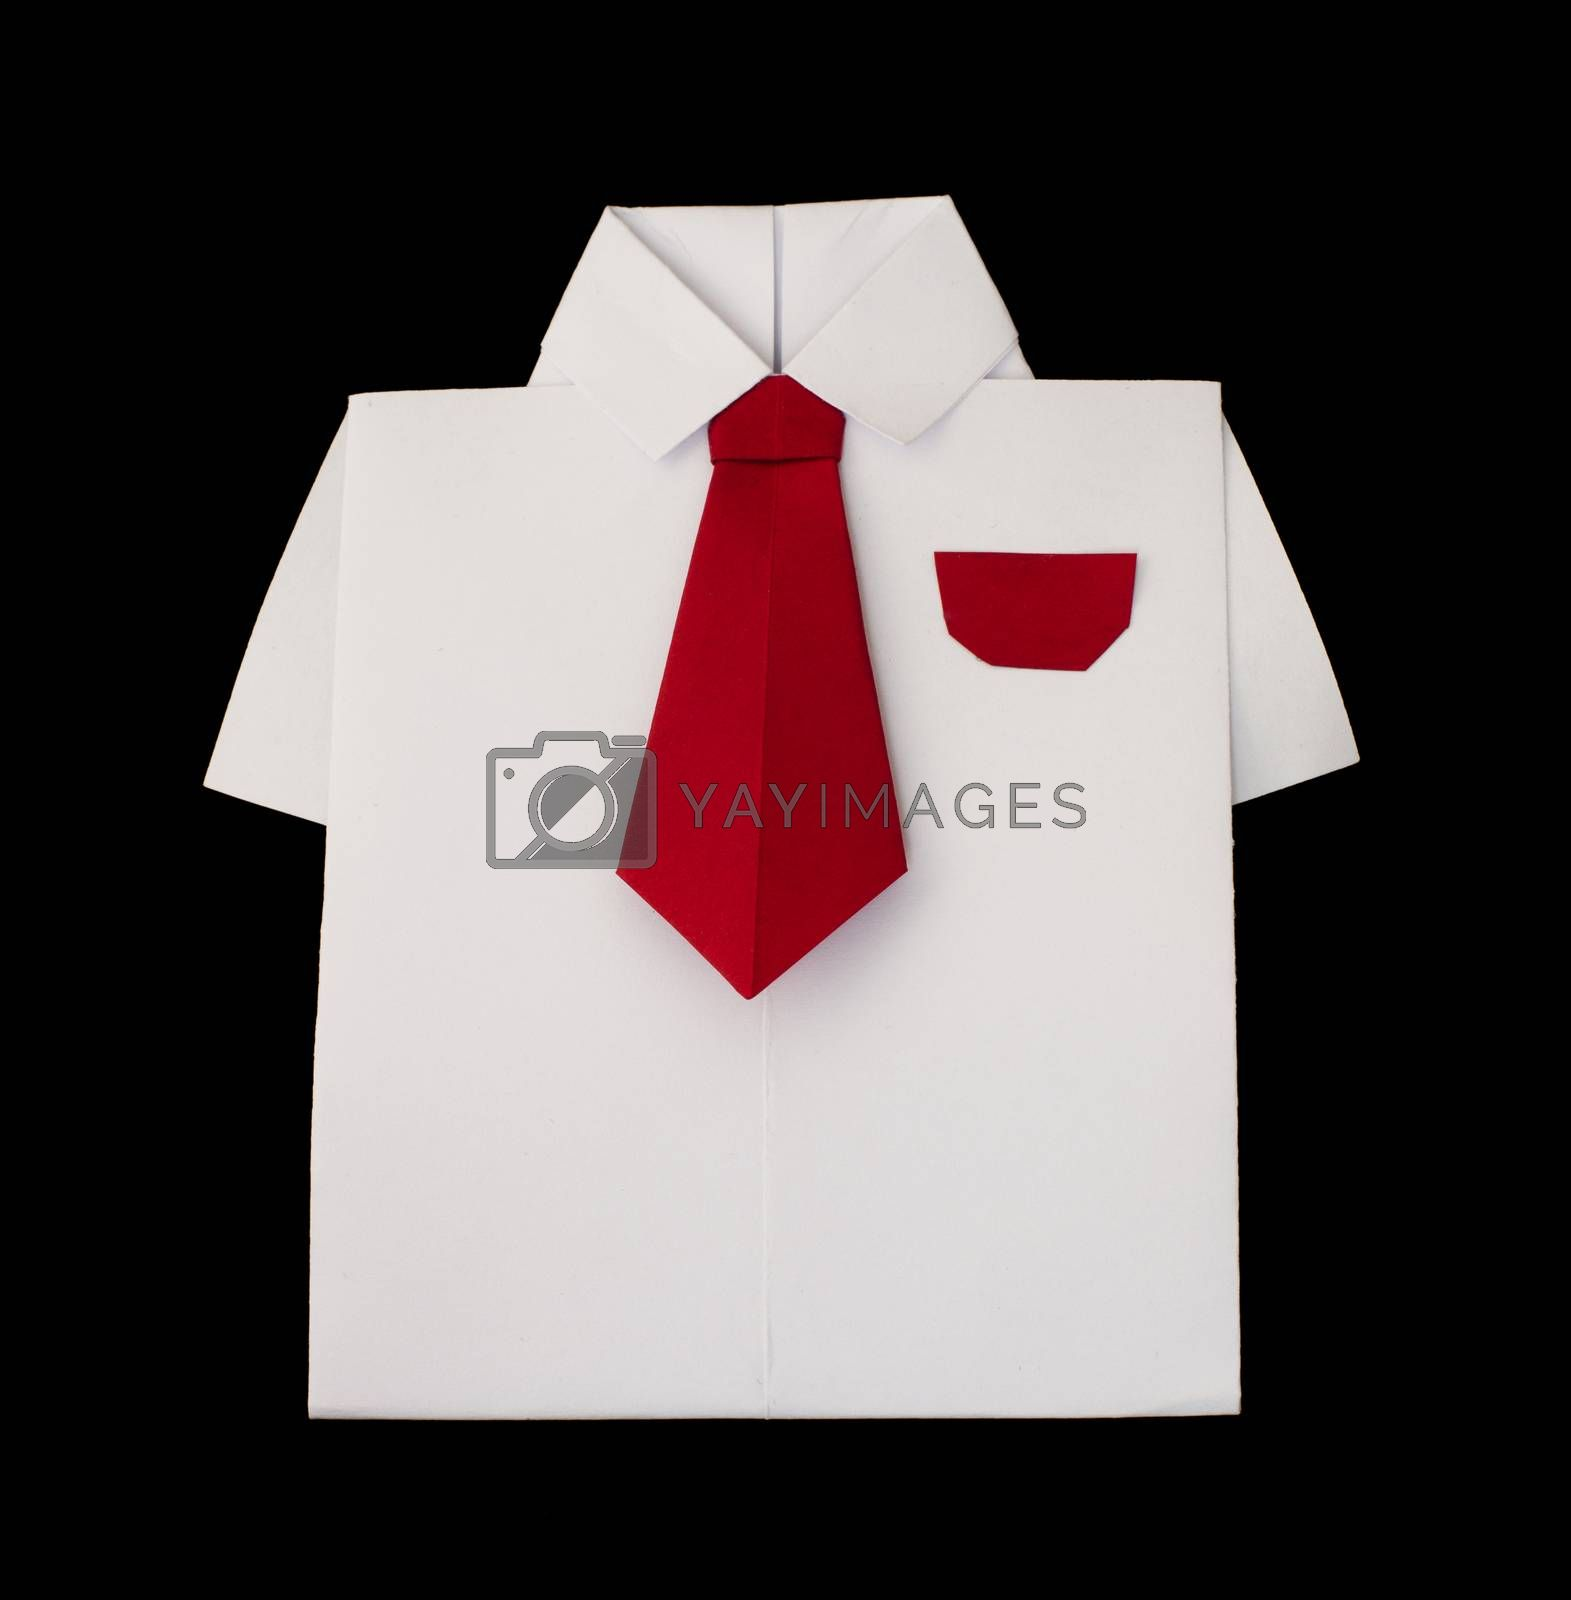 Origami white shirt with tie. Black isolated